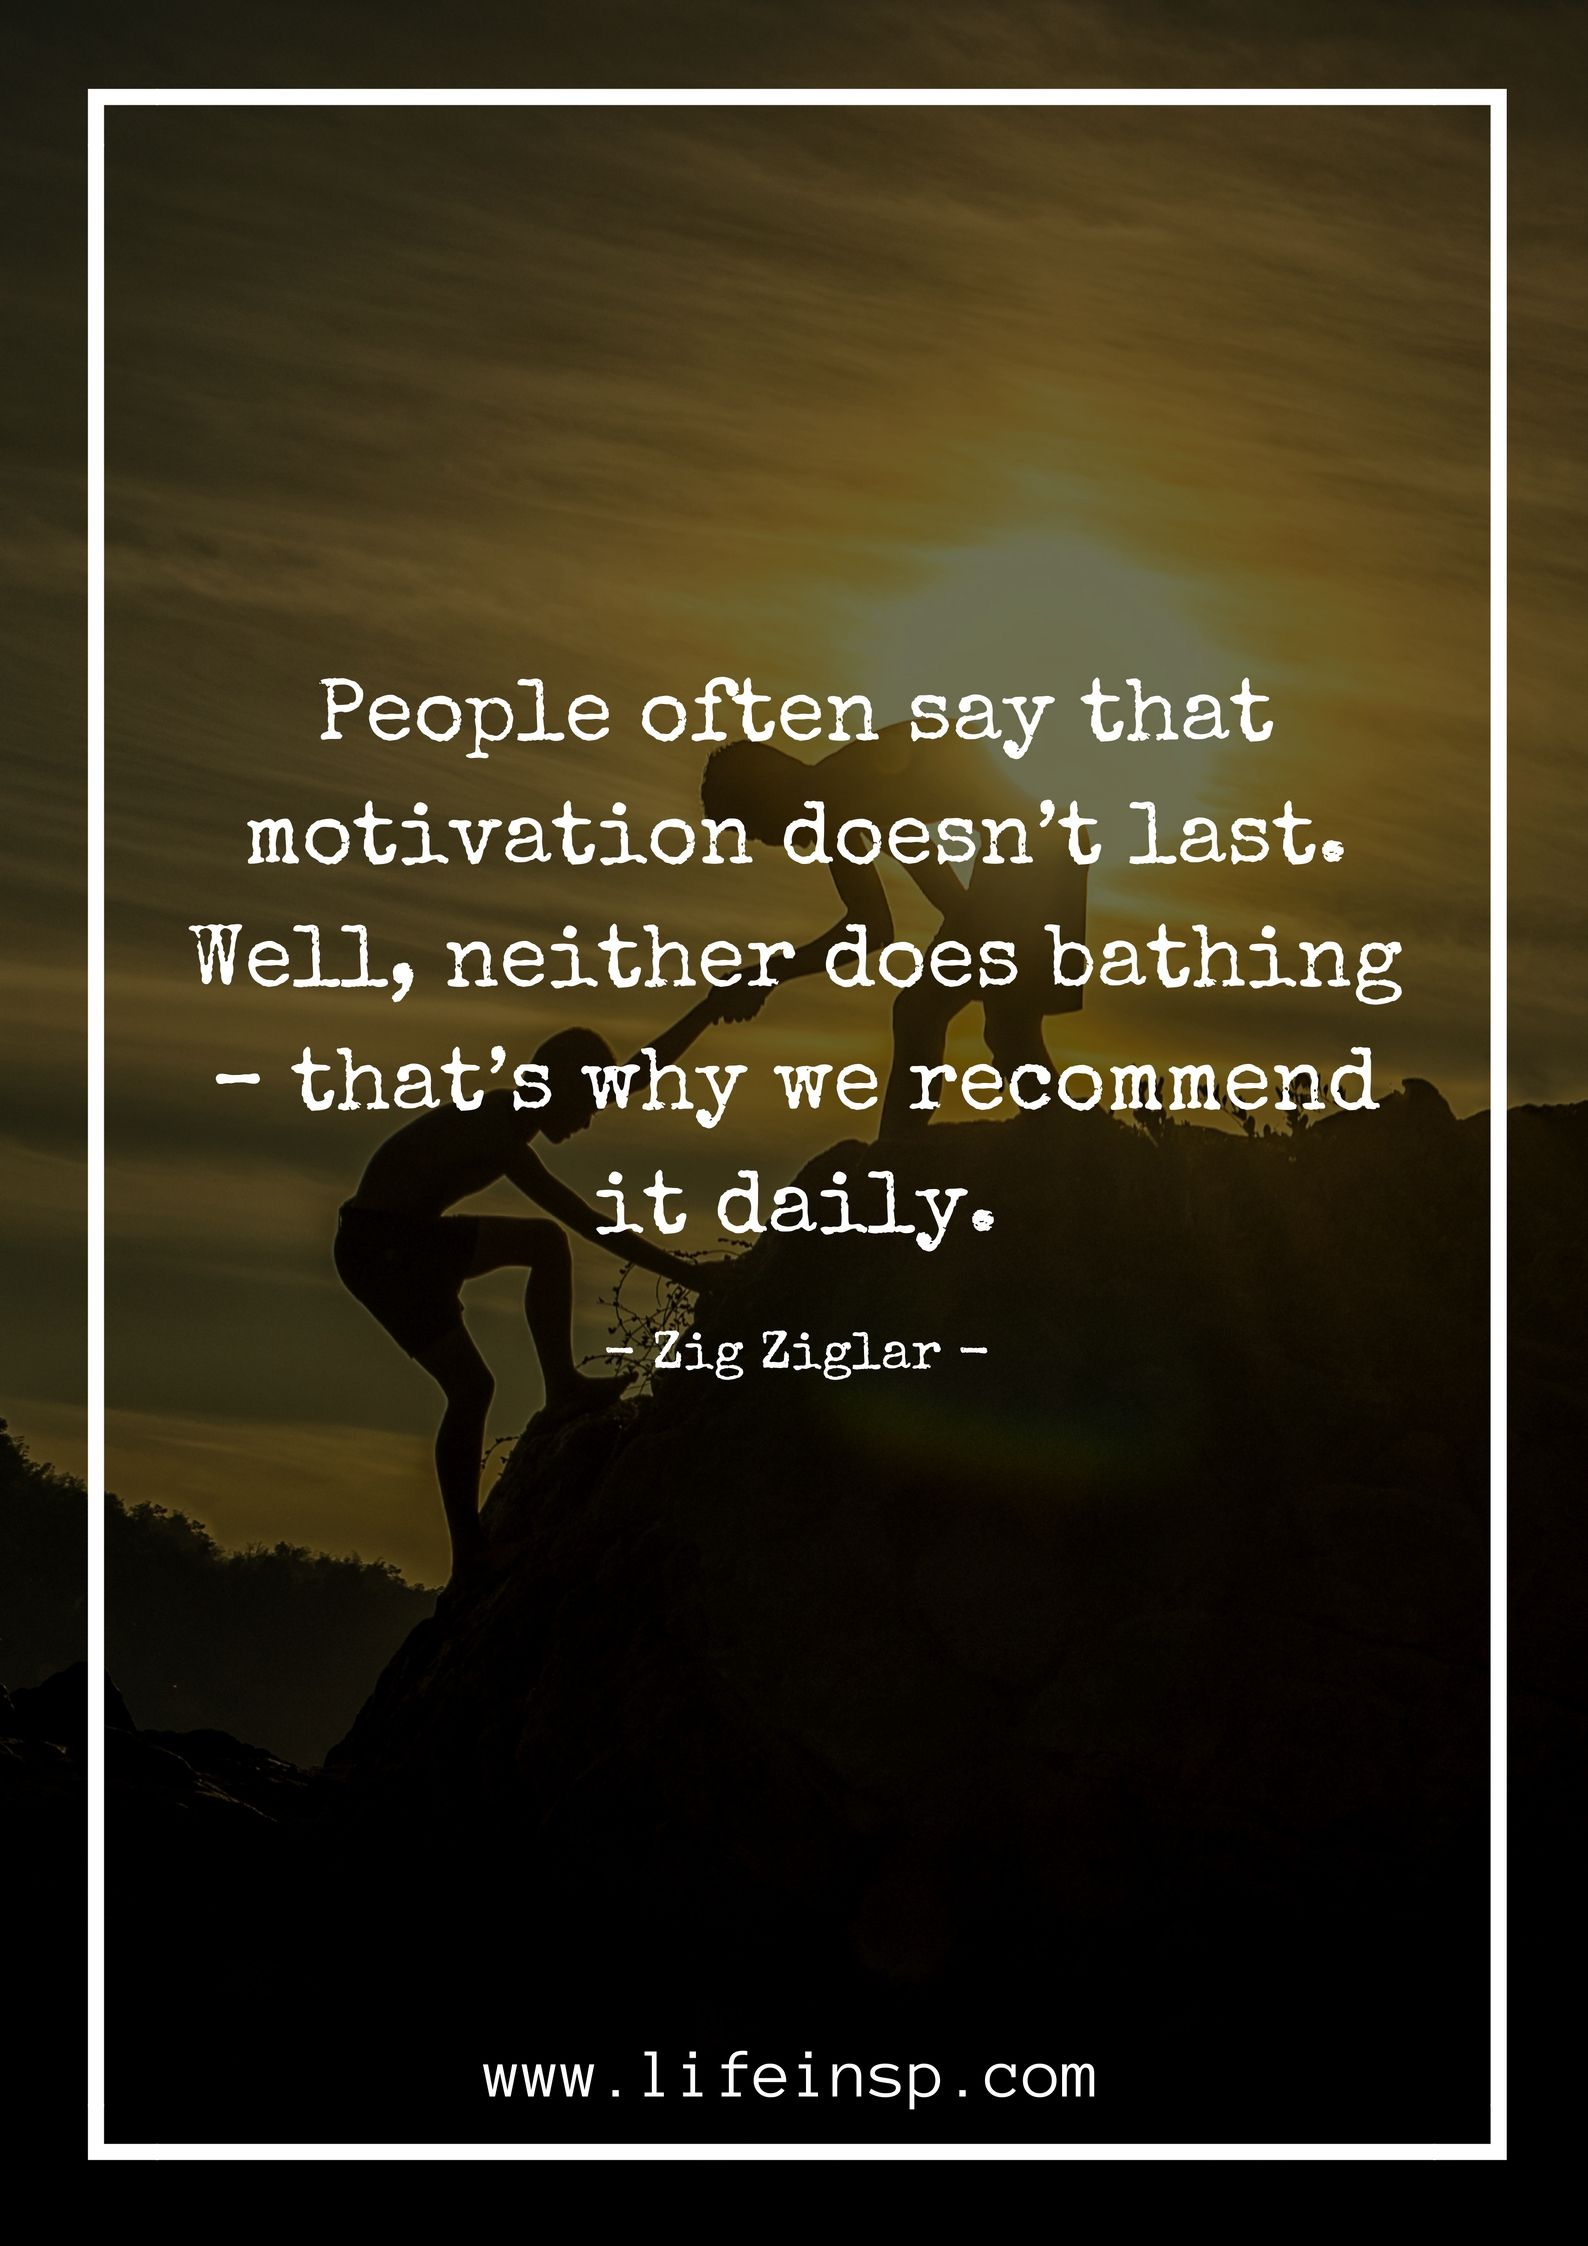 20 Funny Motivational Quotes That Will Motivate And Make You Laugh Lifeinspiration Funny Motivational Quotes Motivational Quotes Motivation